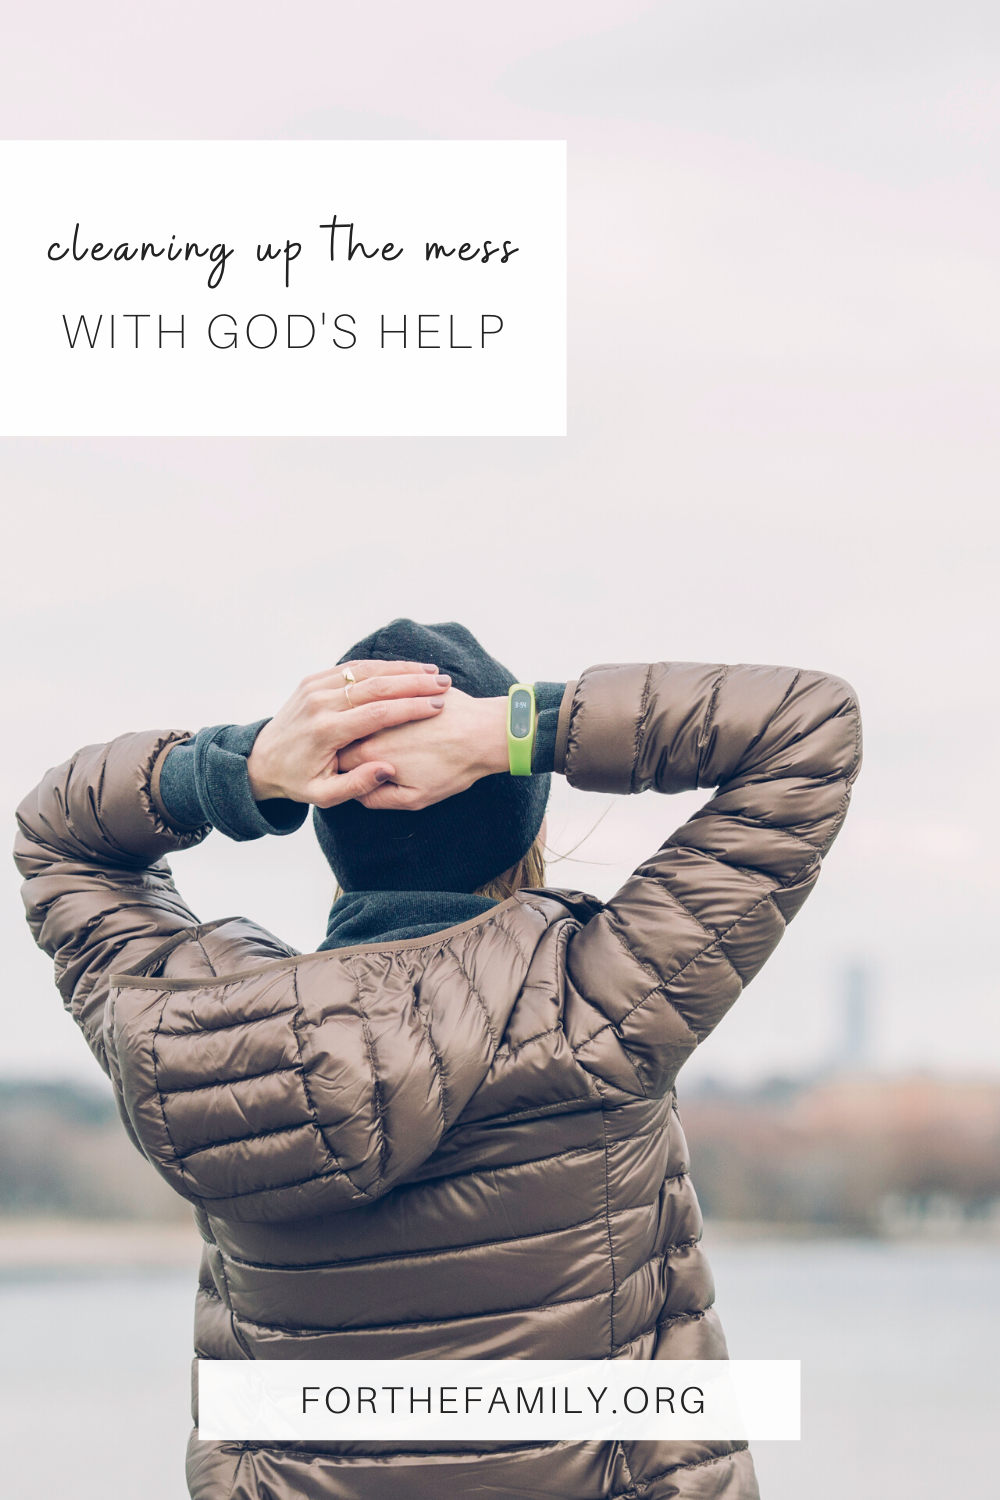 There are times in our lives when we feel like we are in a big mess that we don't know how to get out of. Luckily, we have a Heavenly Father willing to help us out of our messes, no matter how big or small!